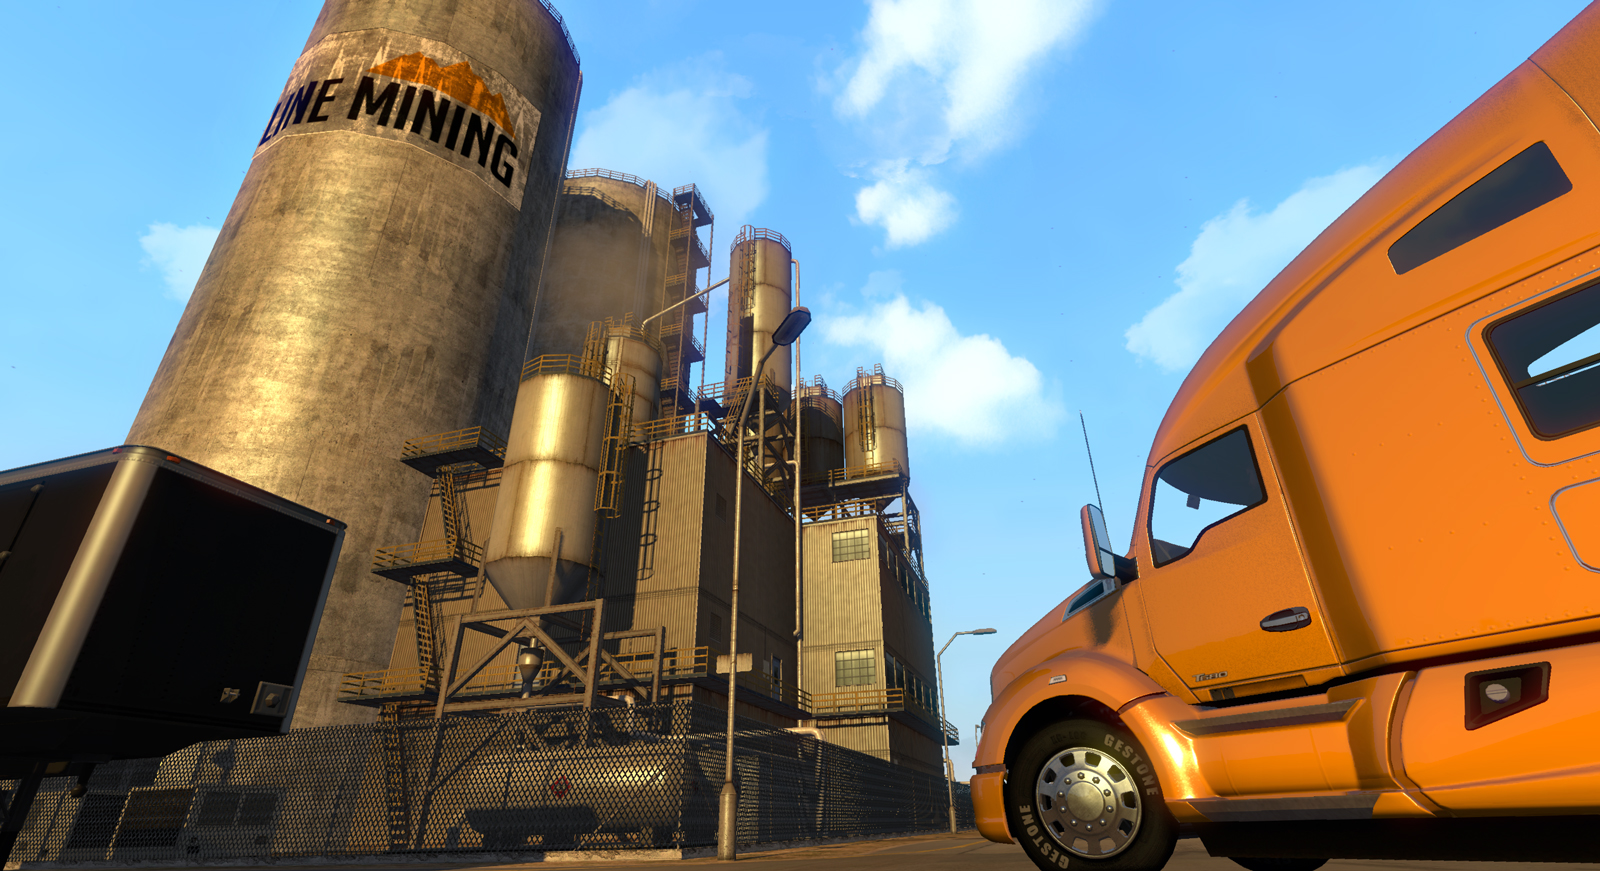 Across the desert in American Truck Simulator